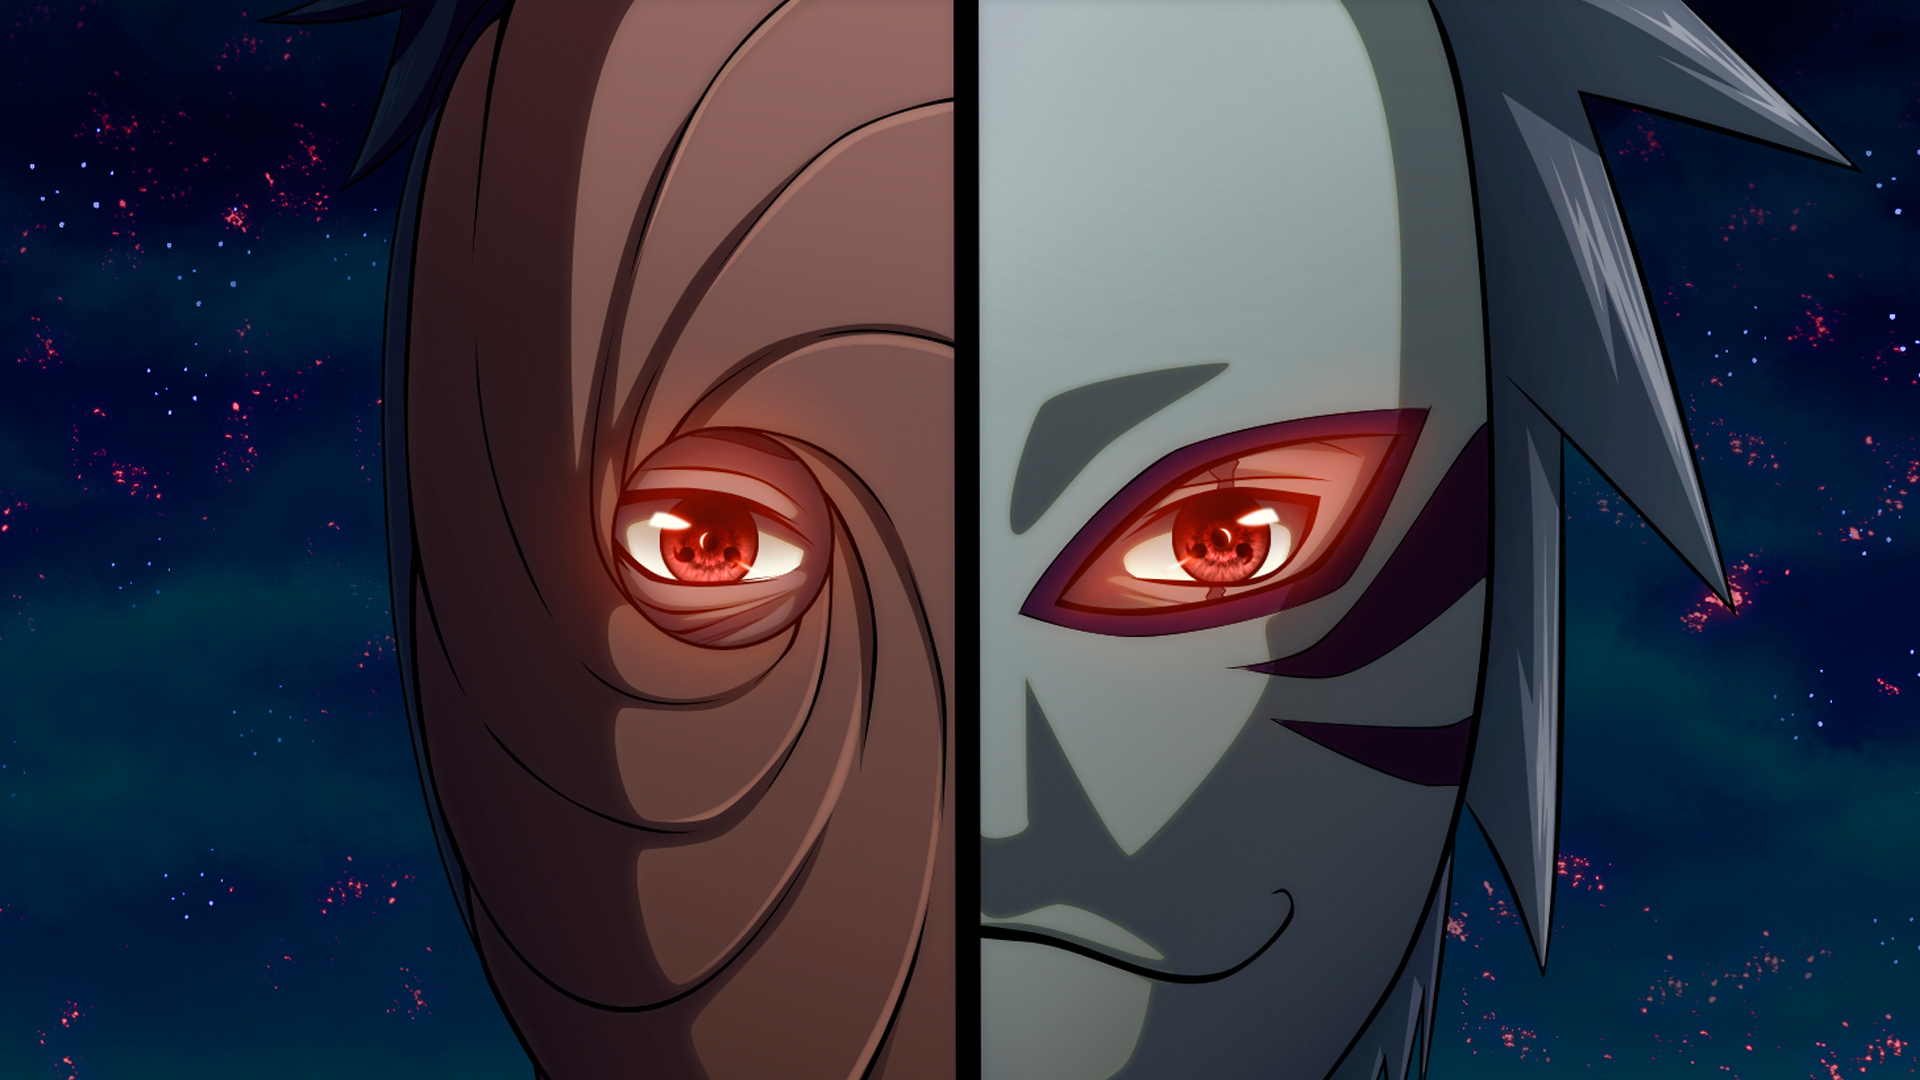 Obito Uchiha Wallpaper Iphone Kakashi hatake and obito tobi 1920x1080